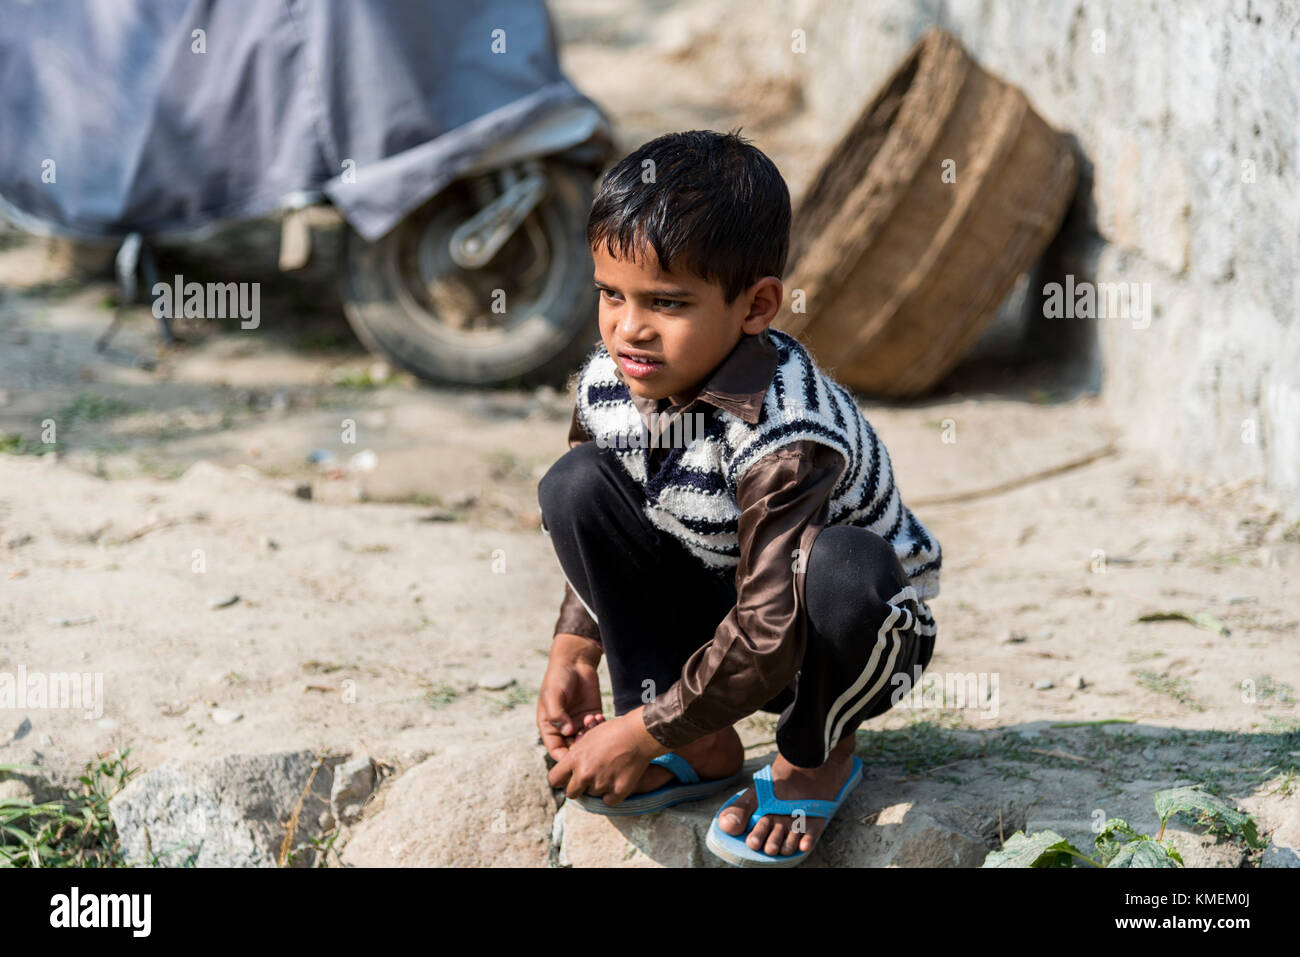 Portrait of a young Indian boy - Stock Image